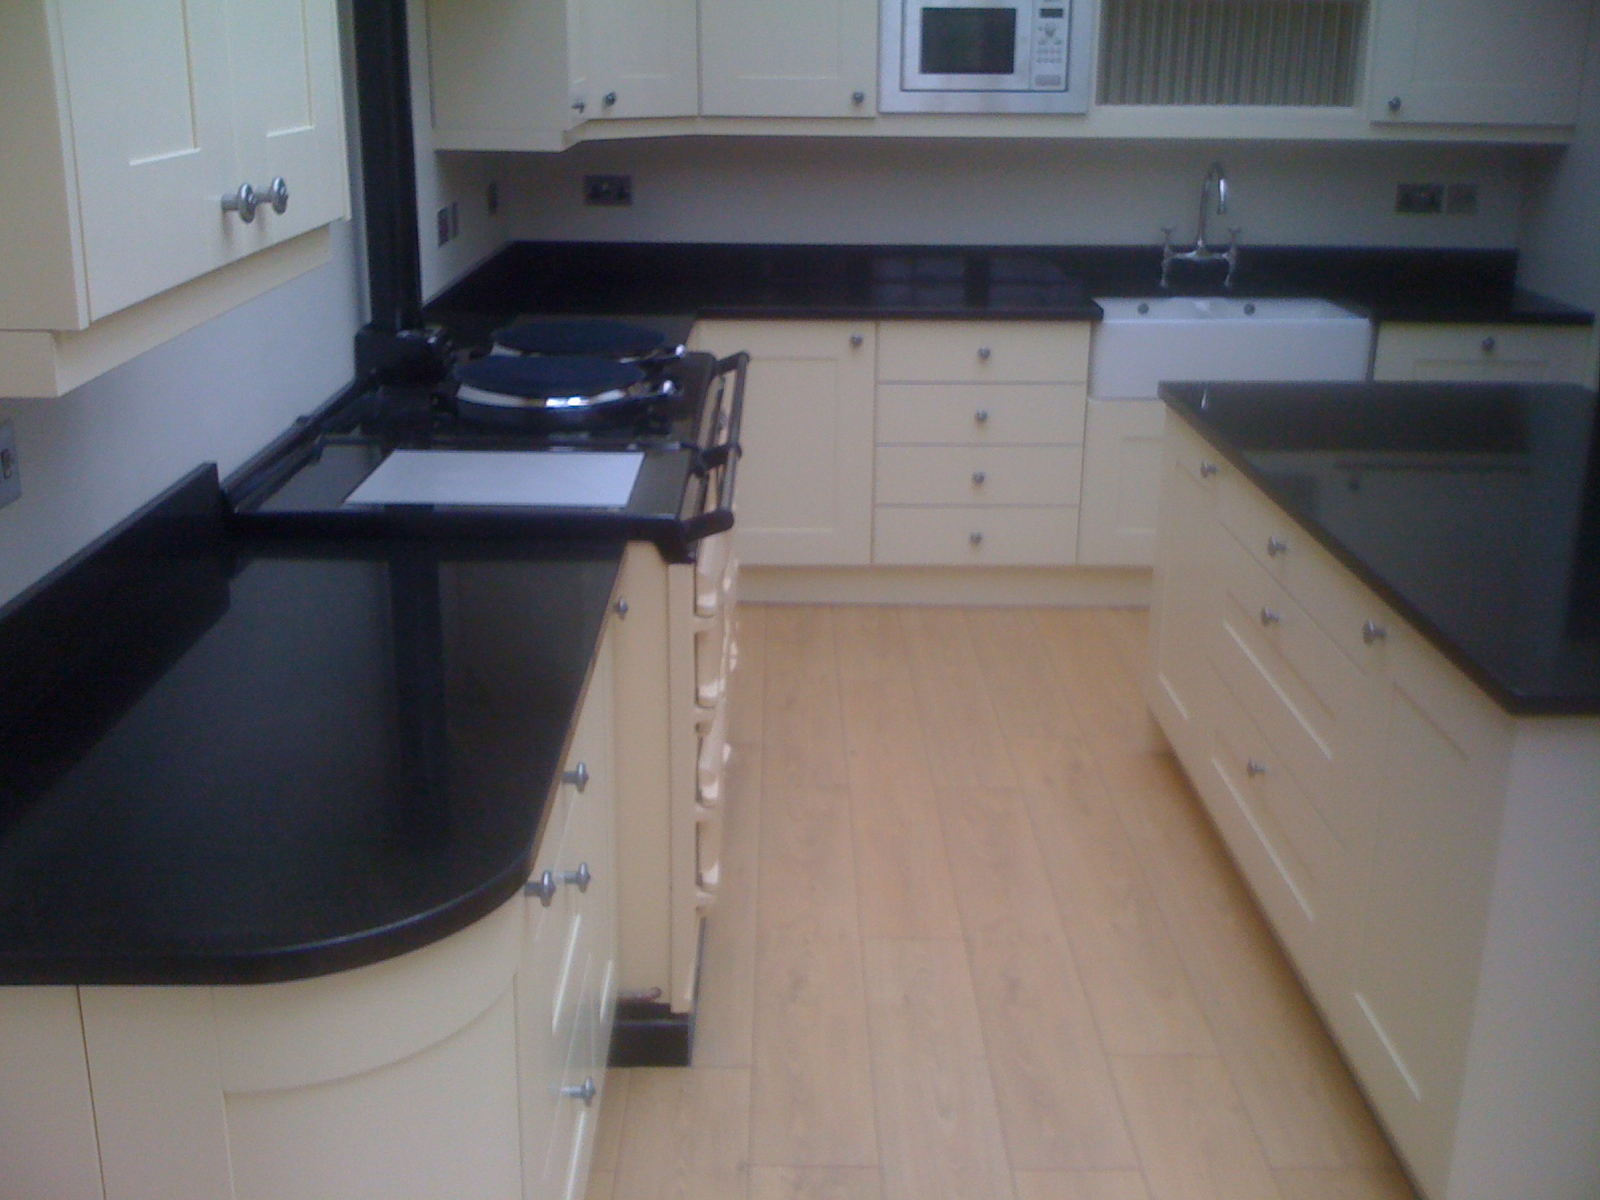 We supply Granite and Quartz Worktops in the hertfordshire Area. We supply Granite and Quartz Worktops in the Berkhamsted Area. We supply Granite and Quartz Worktops in the Bishops-Stortford Area. We supply Granite and Quartz Worktops in the Borehamwood Area. We supply Granite and Quartz Worktops in the Bushey Area. We supply Granite and Quartz Worktops in the Cheshunt Area. We supply Granite and Quartz Worktops in the Harpenden Area. We supply Granite and Quartz Worktops in the Hatfield Area. We supply Granite and Quartz Worktops in the Hemel-Hempstead Area. We supply Granite and Quartz Worktops in the Hertford Area. We supply Granite and Quartz Worktops in the Hitchin Area. We supply Granite and Quartz Worktops in the Hoddesdon Area. We supply Granite and Quartz Worktops in the Letchworth Area. We supply Granite and Quartz Worktops in the Potters-Bar Area. We supply Granite and Quartz Worktops in the Rickmansworth Area. We supply Granite and Quartz Worktops in the Royston Area. We supply Granite and Quartz Worktops in the St-Albans Area. We supply Granite and Quartz Worktops in the Stevenage Area. We supply Granite and Quartz Worktops in the Ware Area. We supply Granite and Quartz Worktops in the Watford Area. We supply Granite and Quartz Worktops in the Welwyn-Garden-City Area.